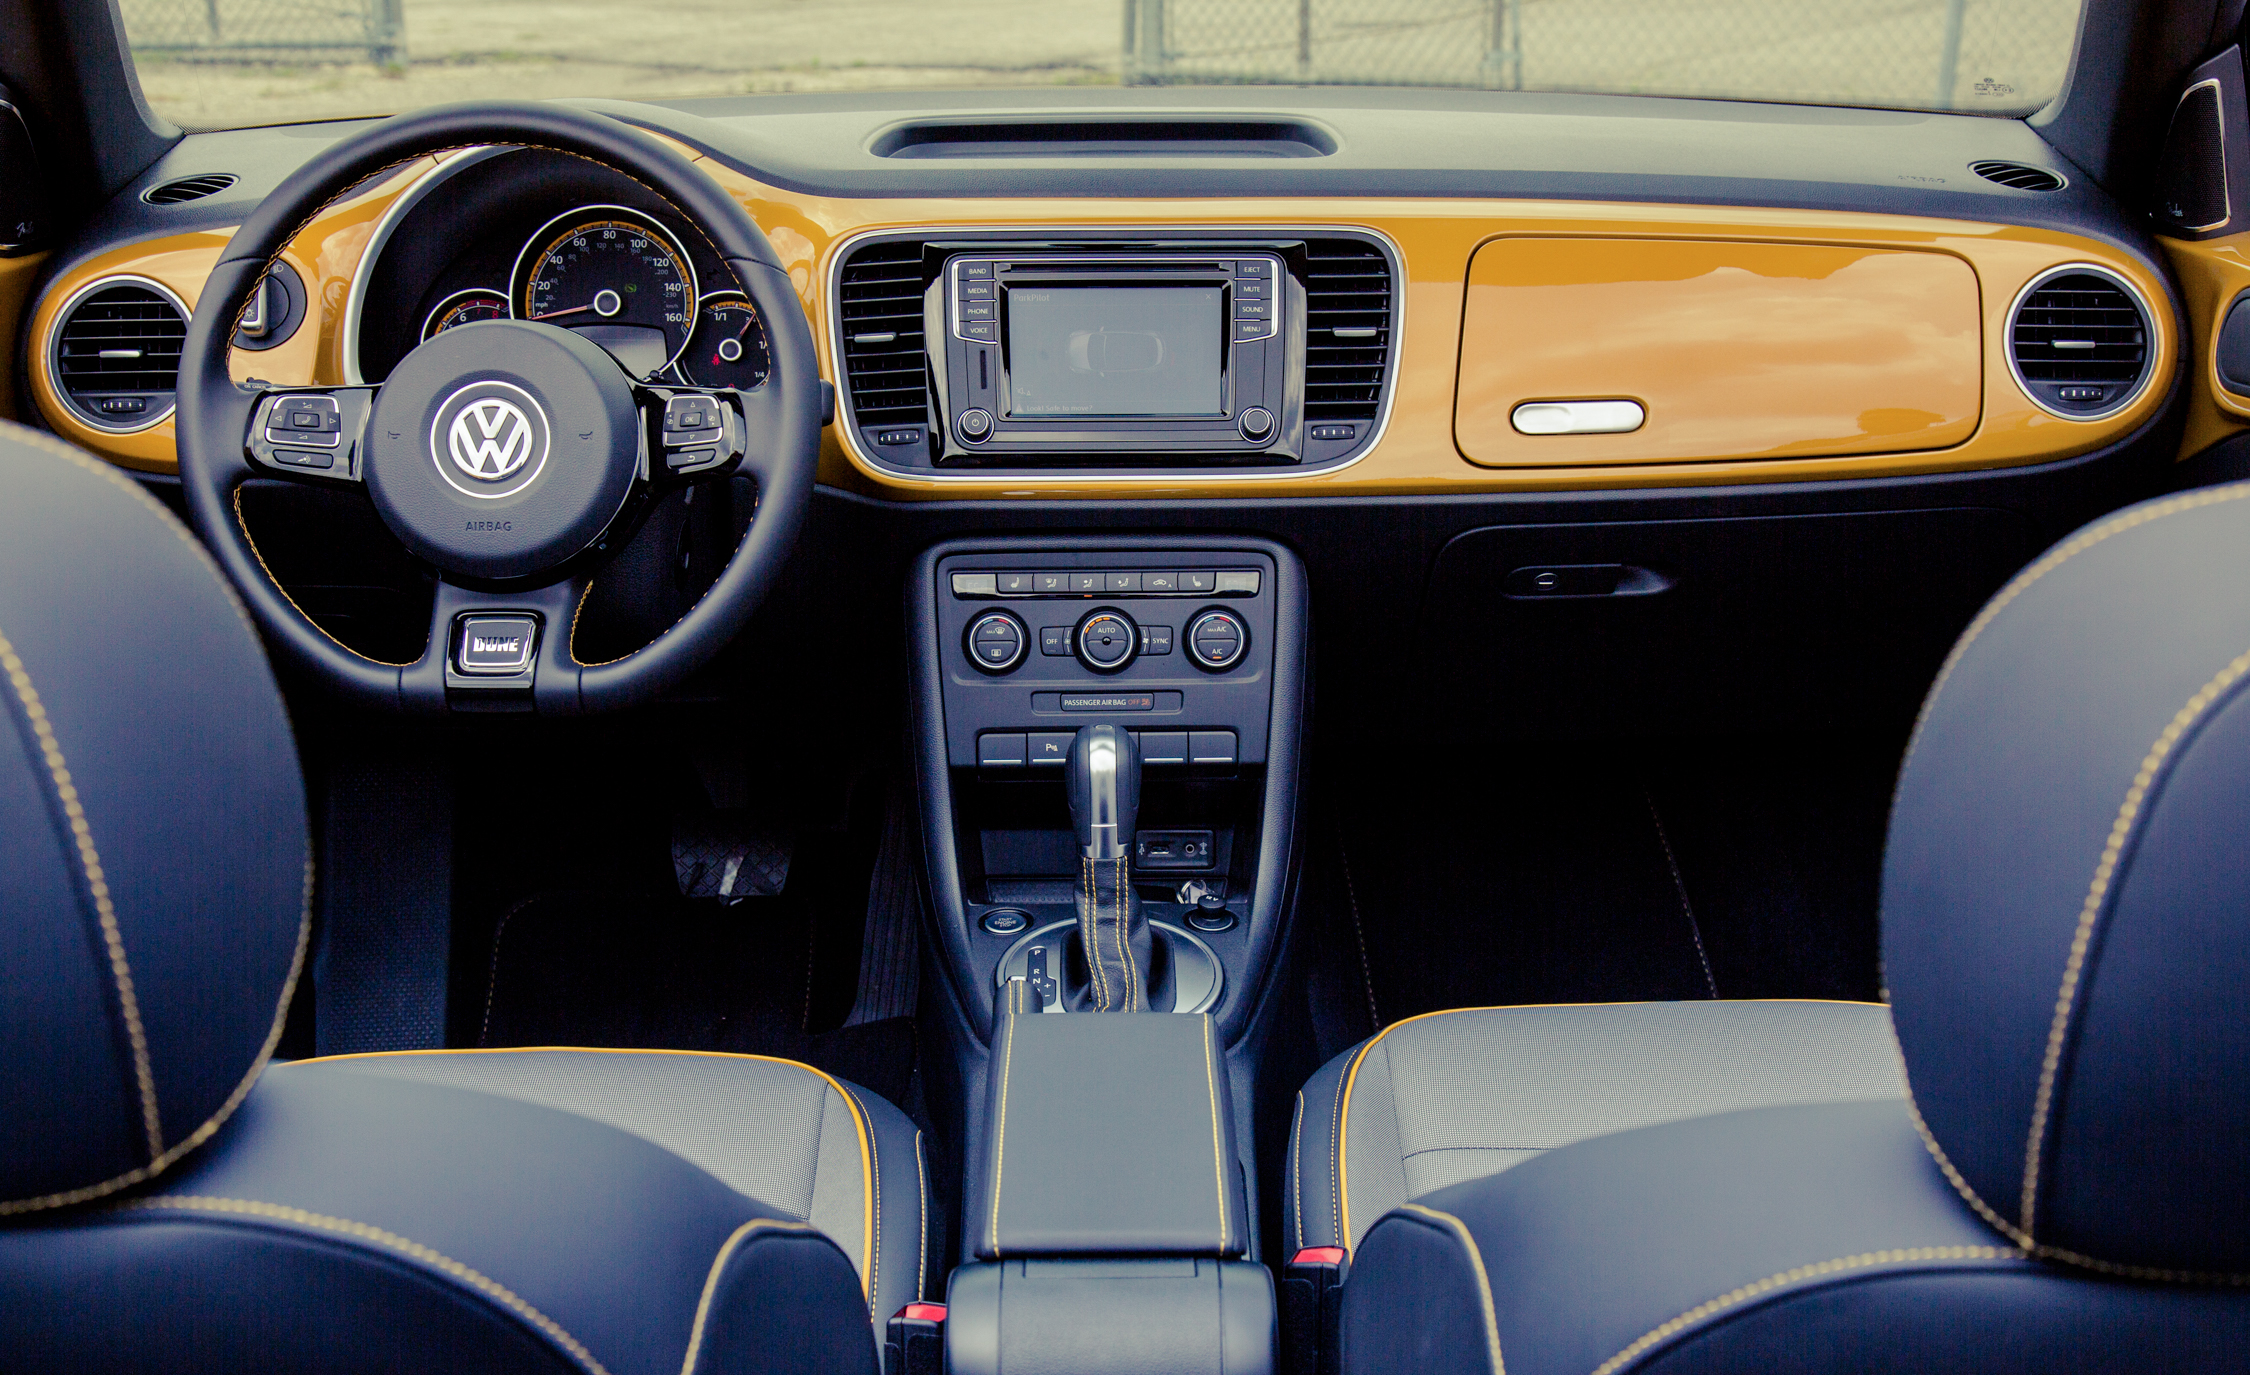 2017 Volkswagen Beetle Dune Convertible Interior Dashboard (Photo 8 of 19)